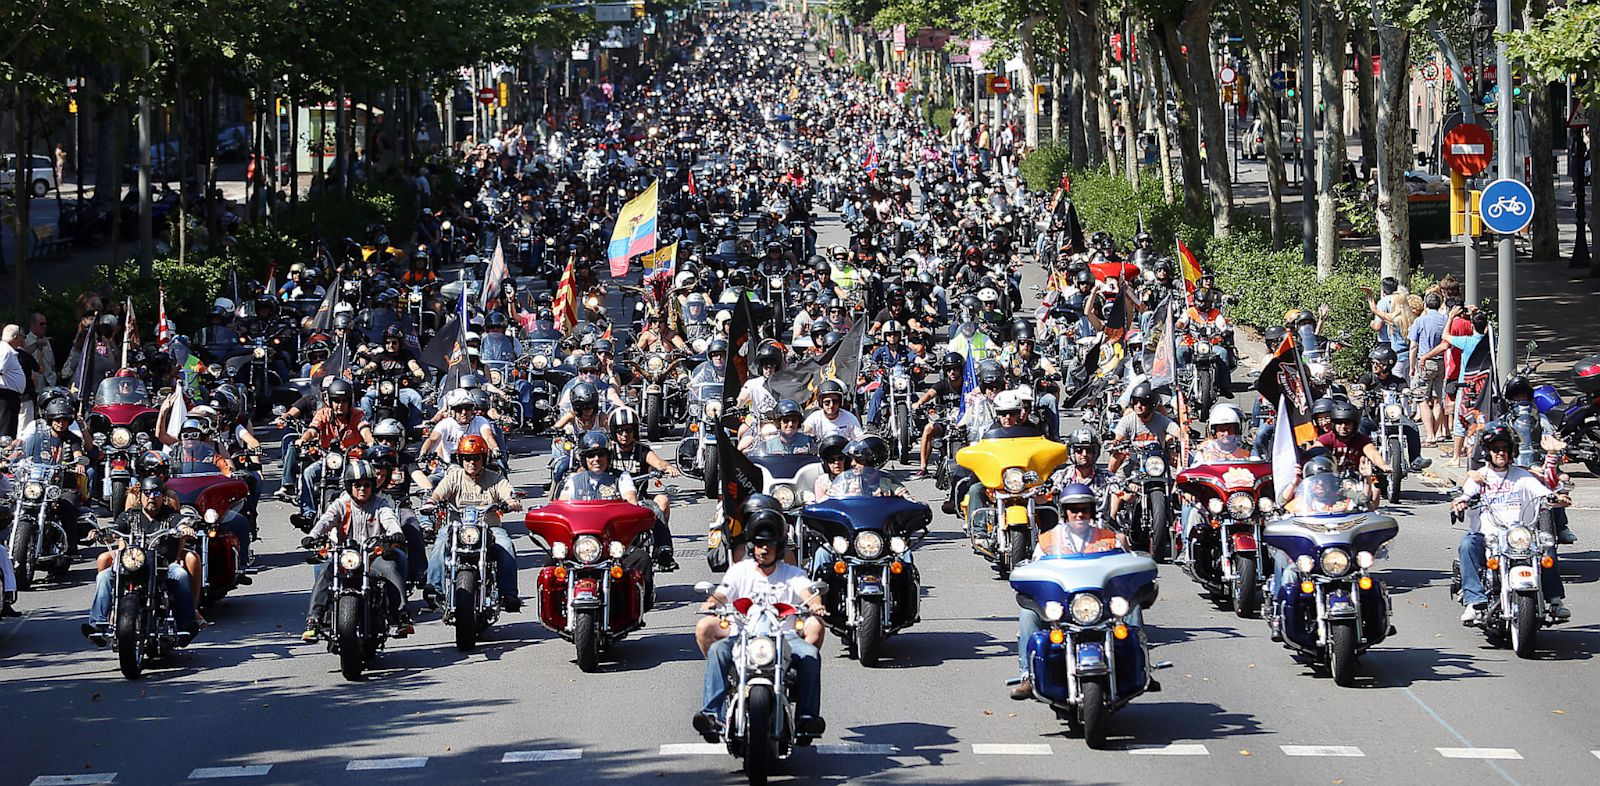 PHOTO: The Harley Davidson 110th Anniversary will take place on Labor Day, 2013.